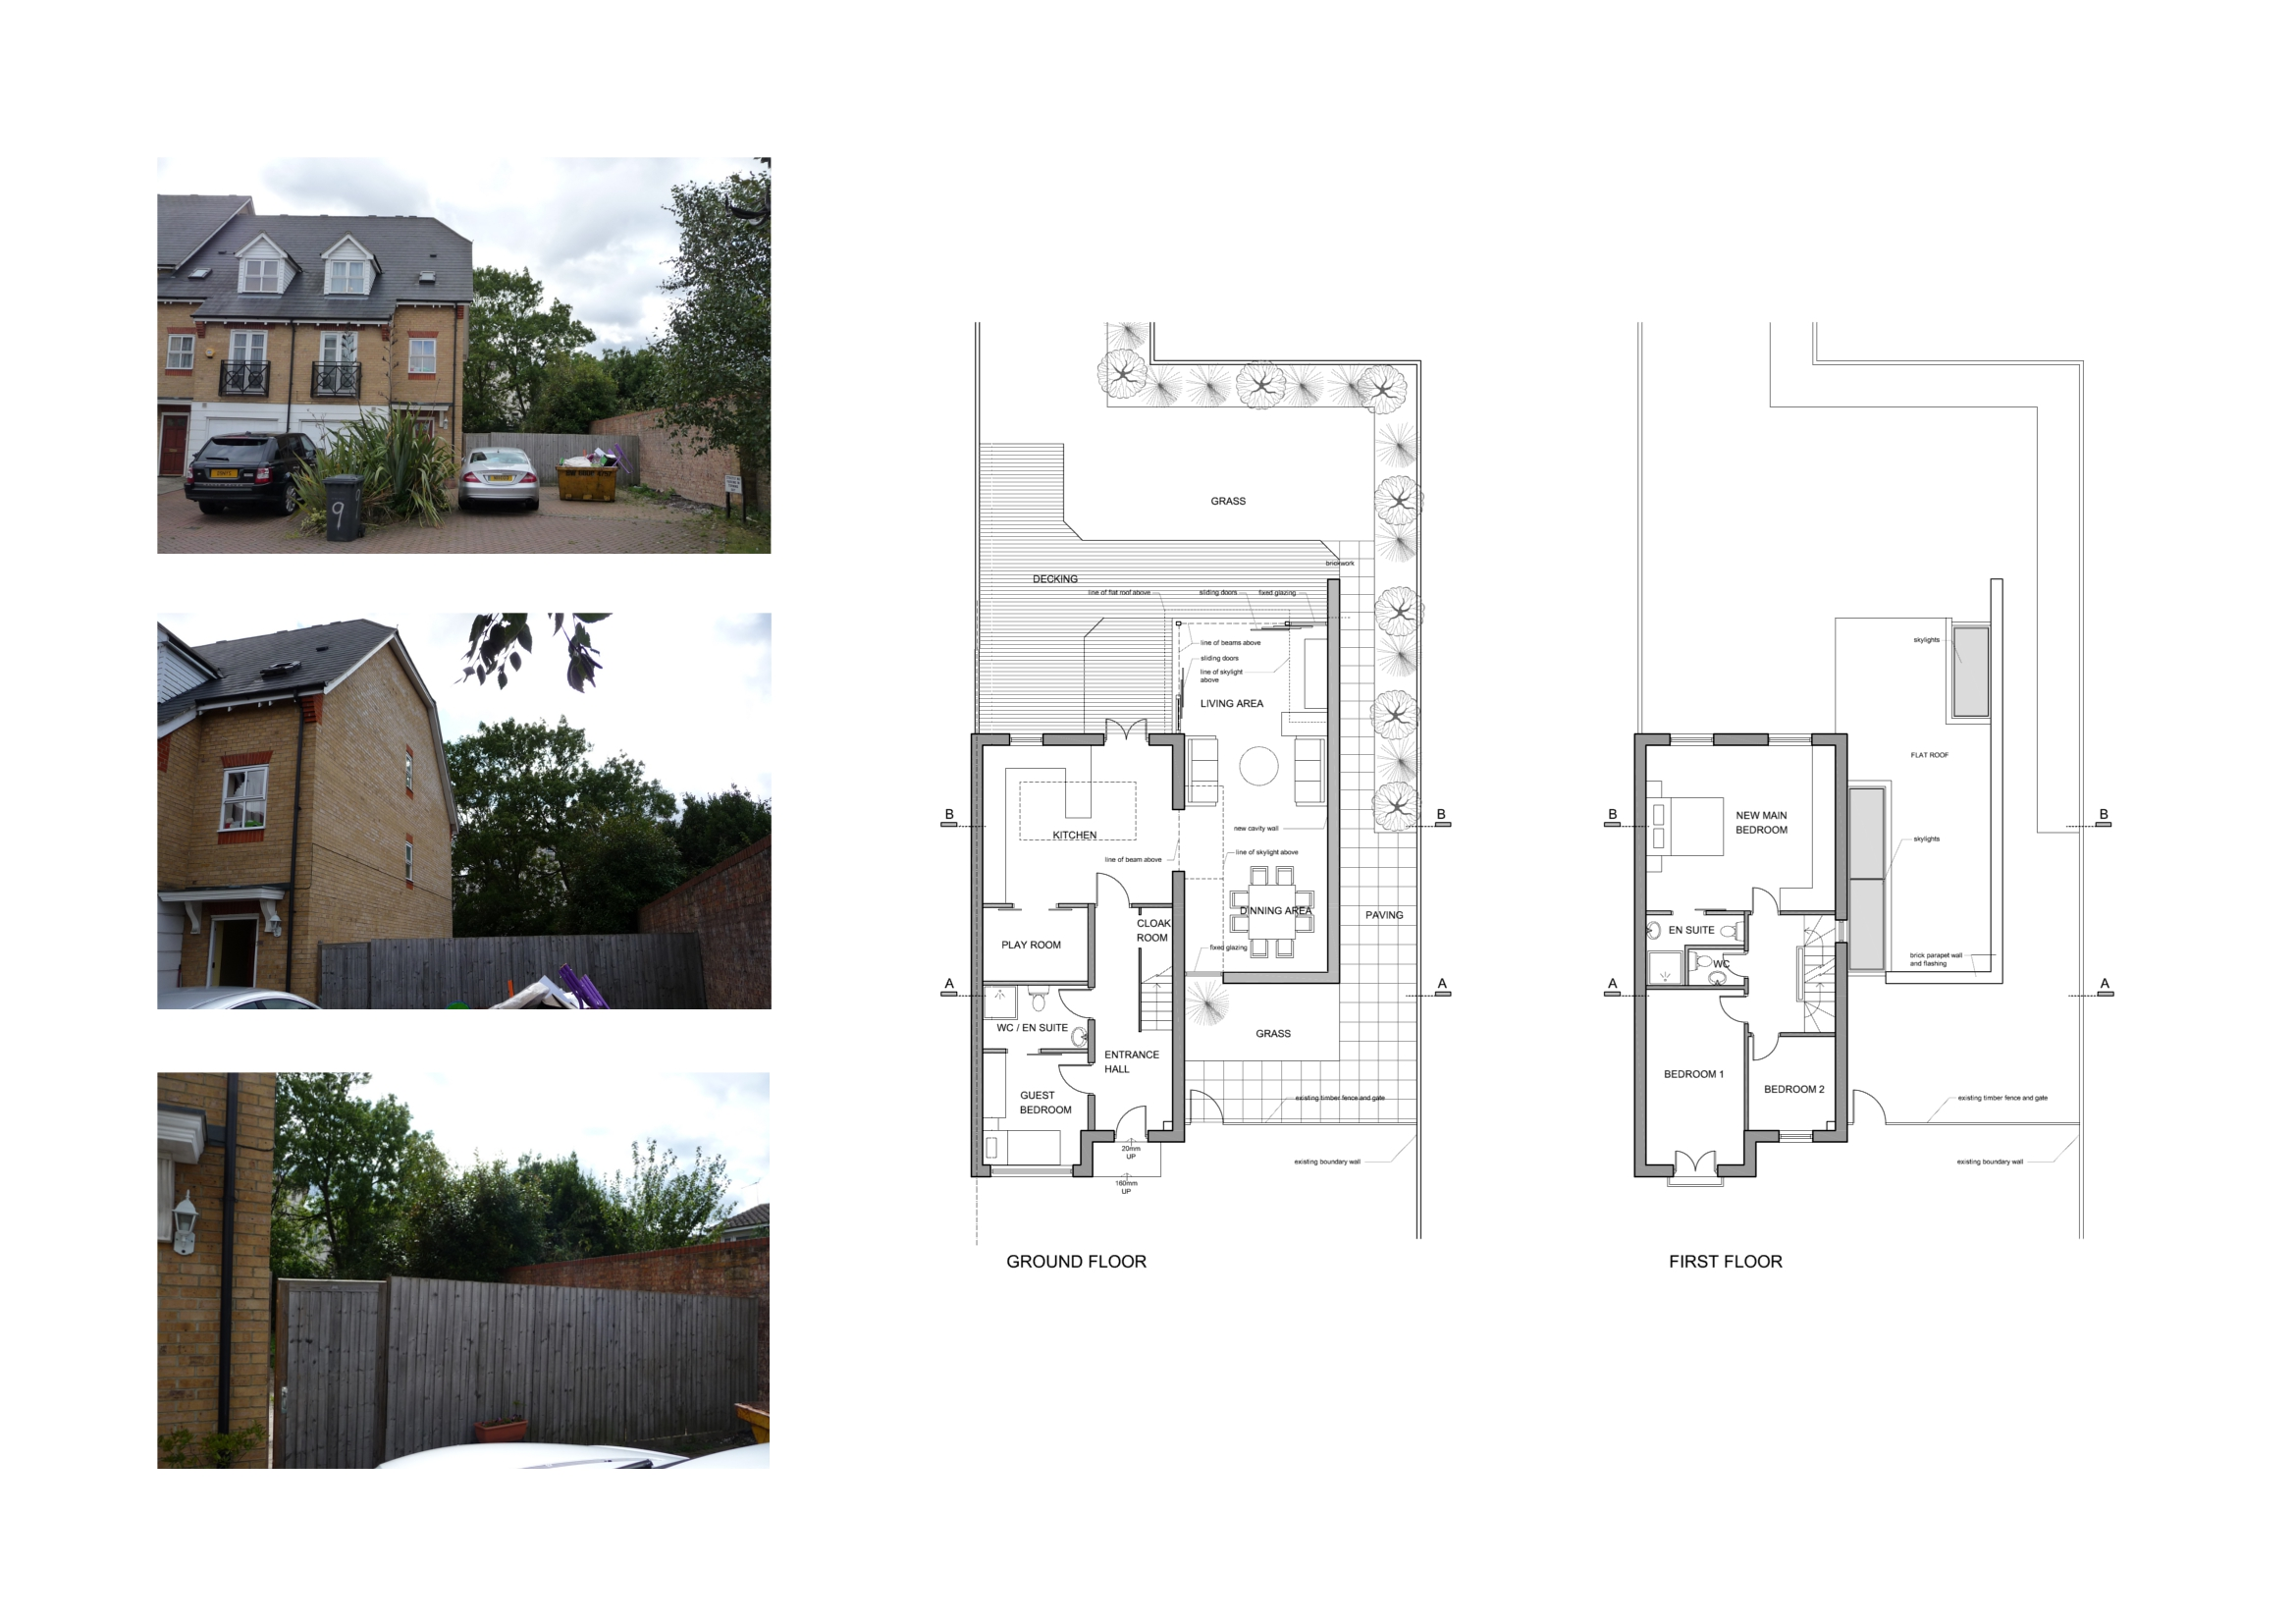 plans for an extension extension plans google search dormer